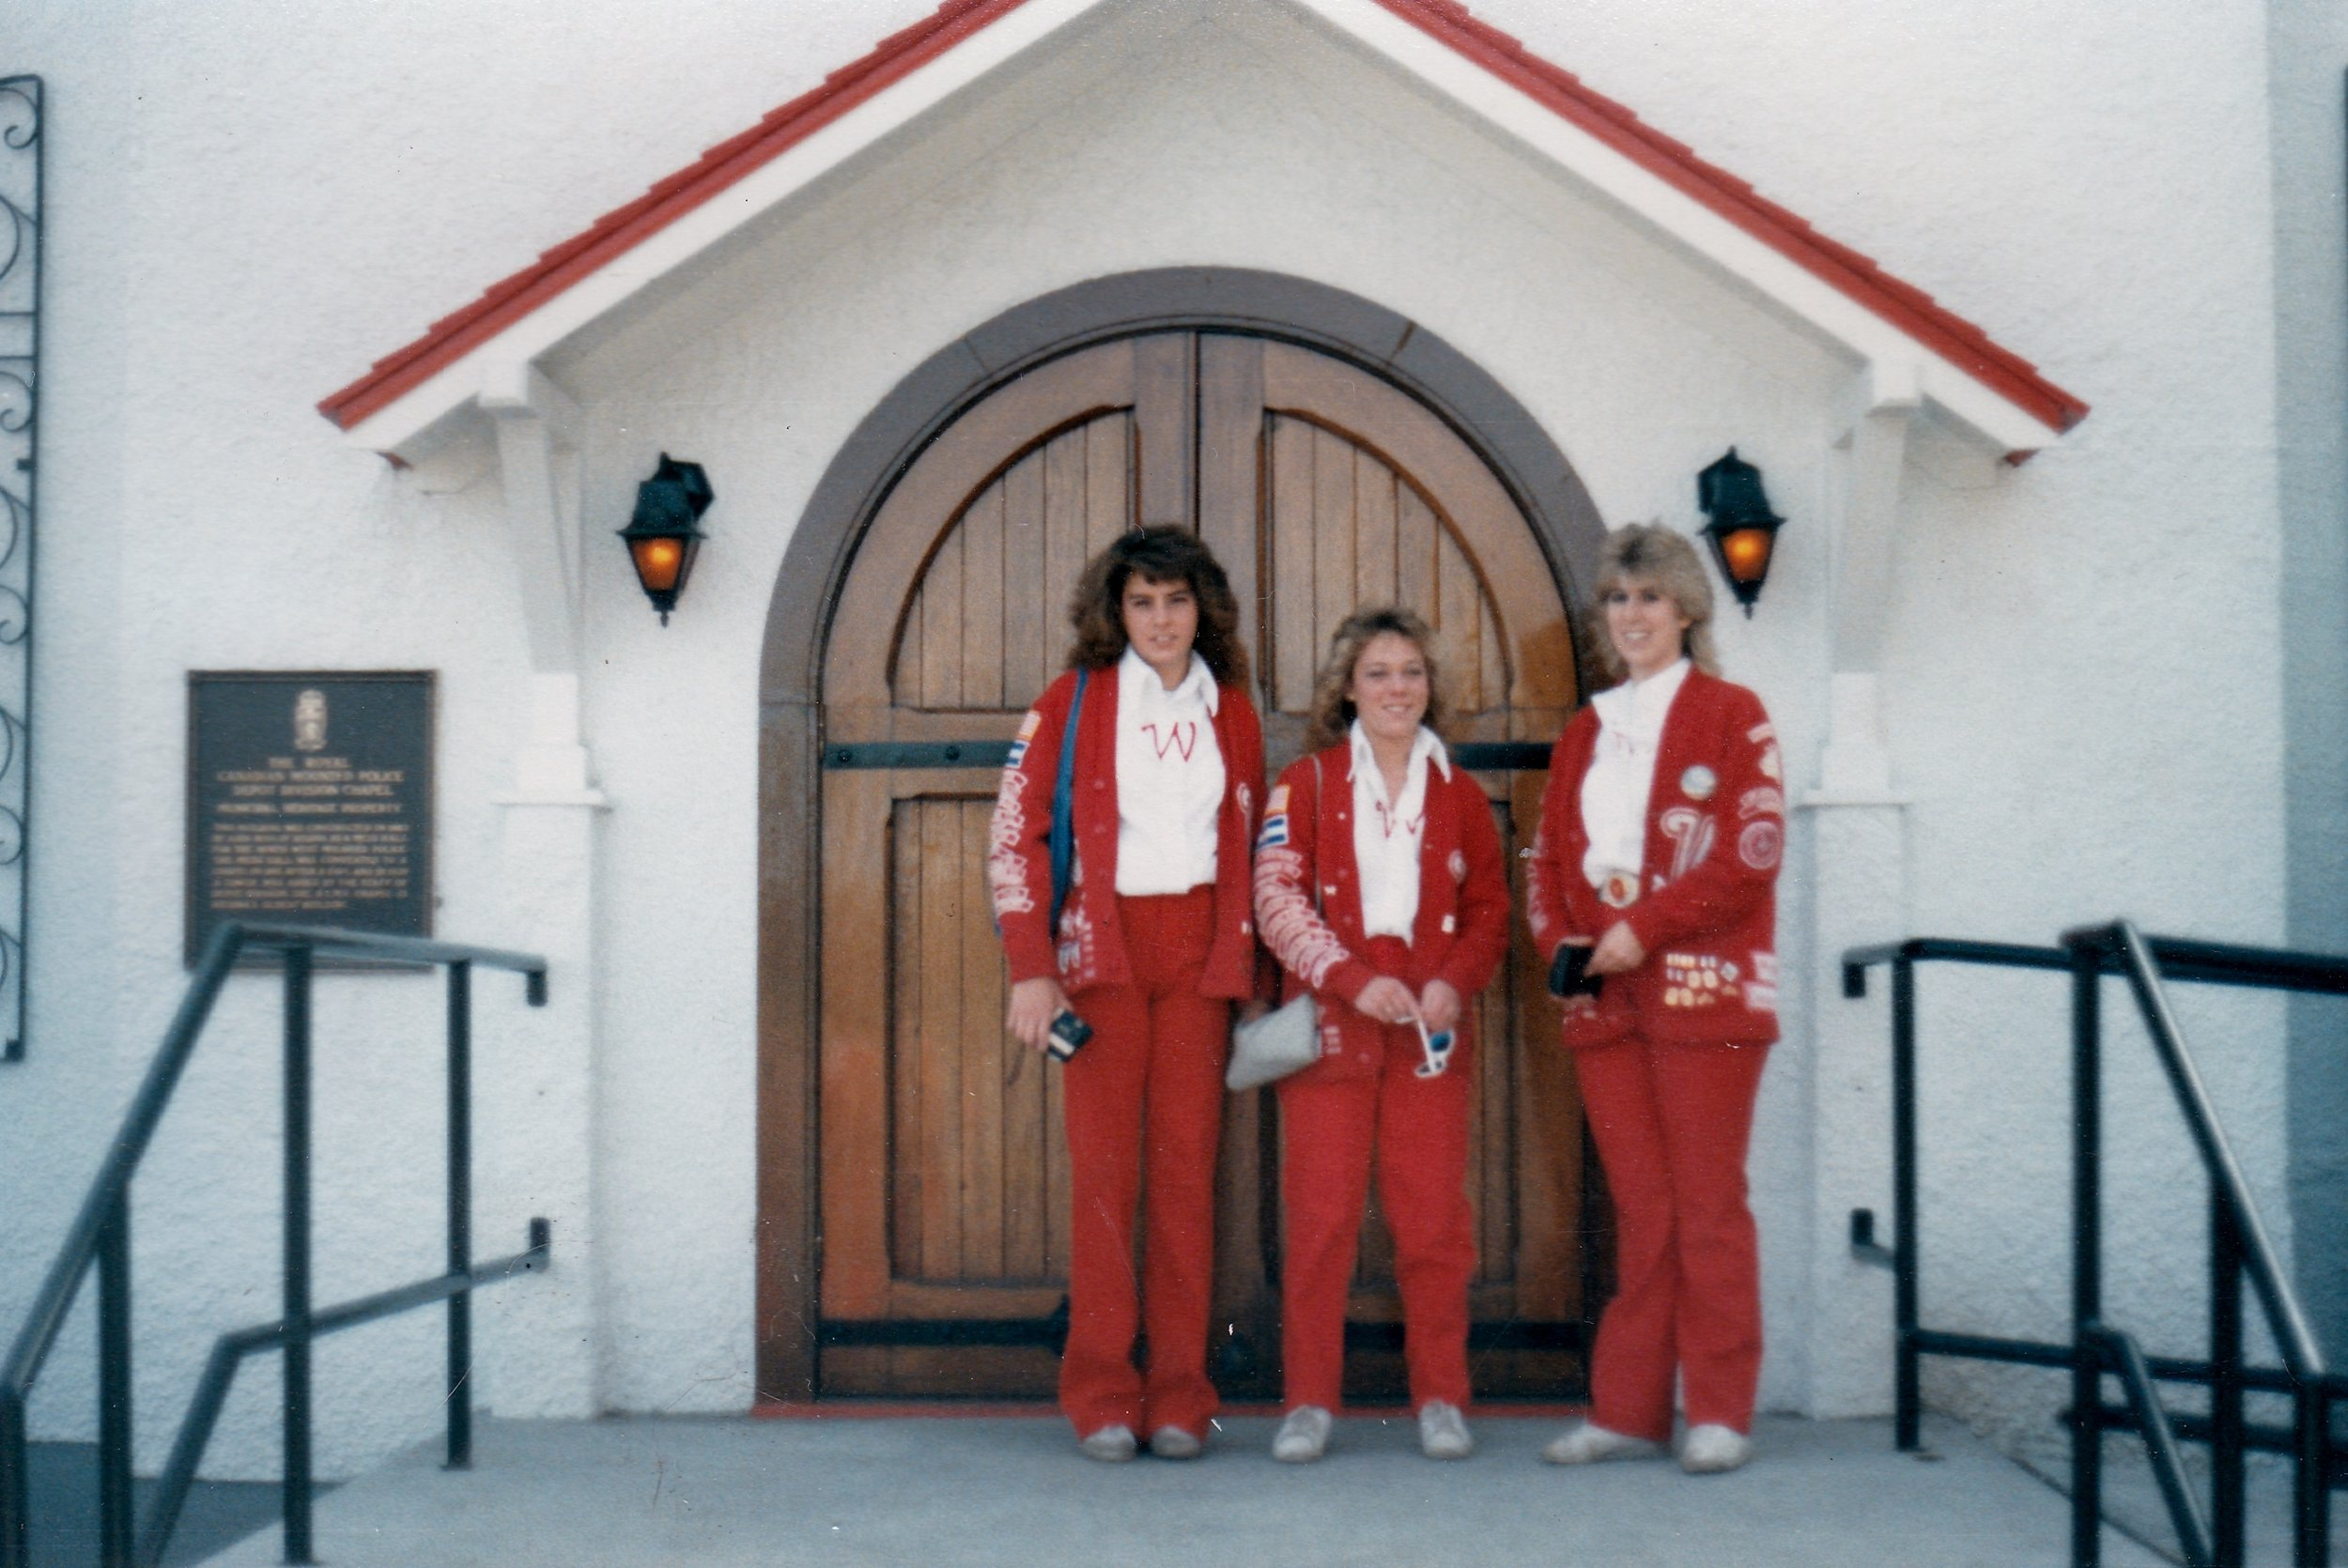 Varsity Red Team riders tour the RCMP Chapel:the oldest remaining building in Regina. Left to right: Varsity Red Team riders Christine Padilla, Lori Mosier, and Kristen Vardaman.